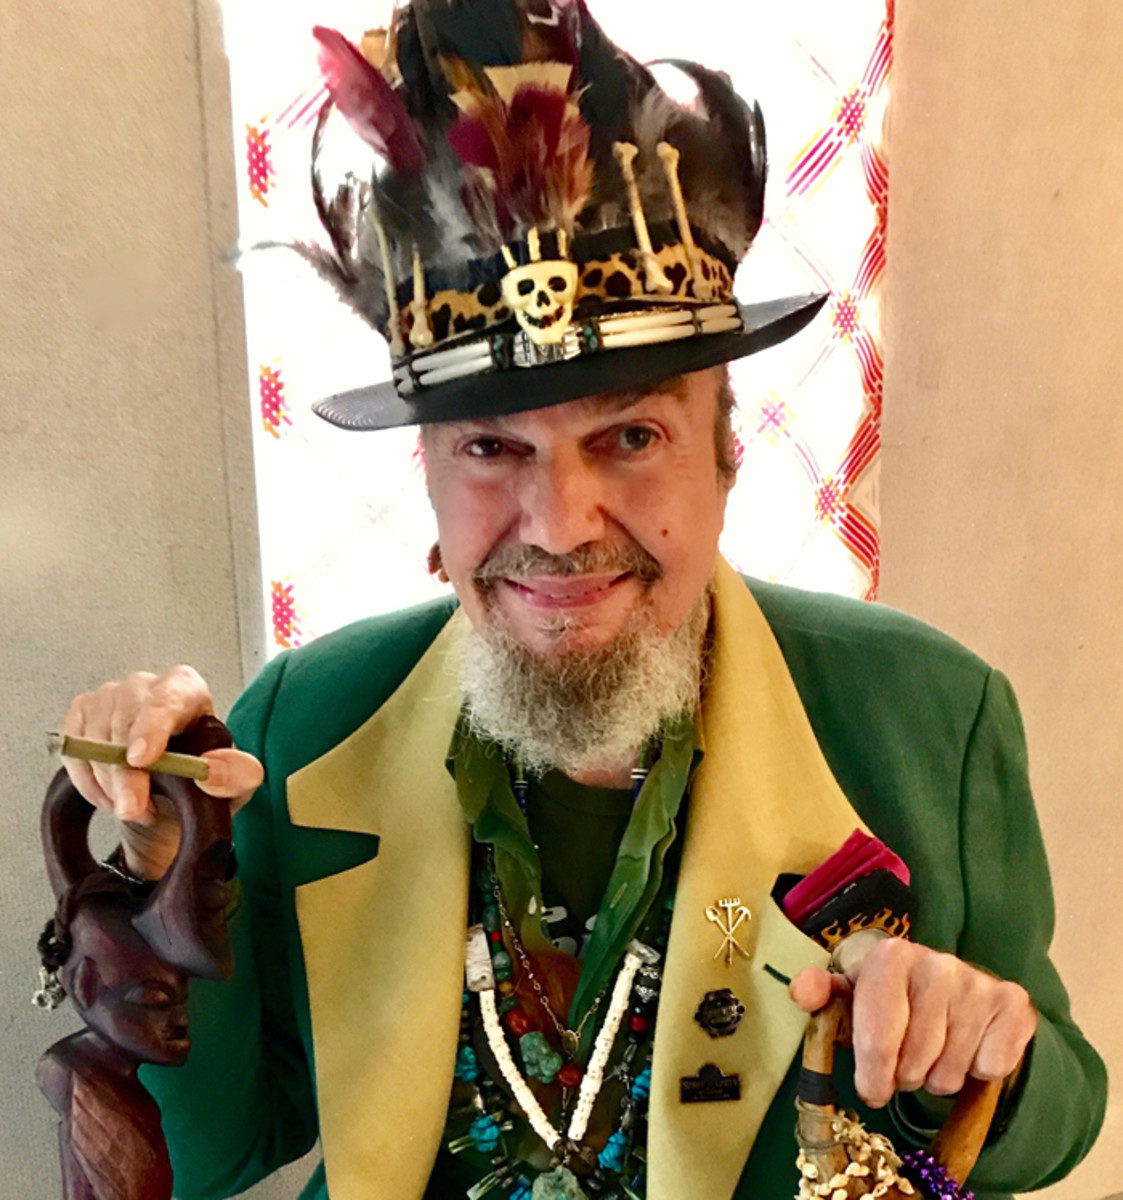 """""""Producer Harold Battiste gave the record his style of psycho-delphia,"""" Dr. John says of the album """"Gris-Gris."""" """"I didn't want to be the front man but (singer) Ronnie Barron's manager thought it would be a bad career move for him. My conga player 'Didymus' told me that if Bob Dylan can sing, then I can sing, too."""" Photo courtesy of Dr. John."""